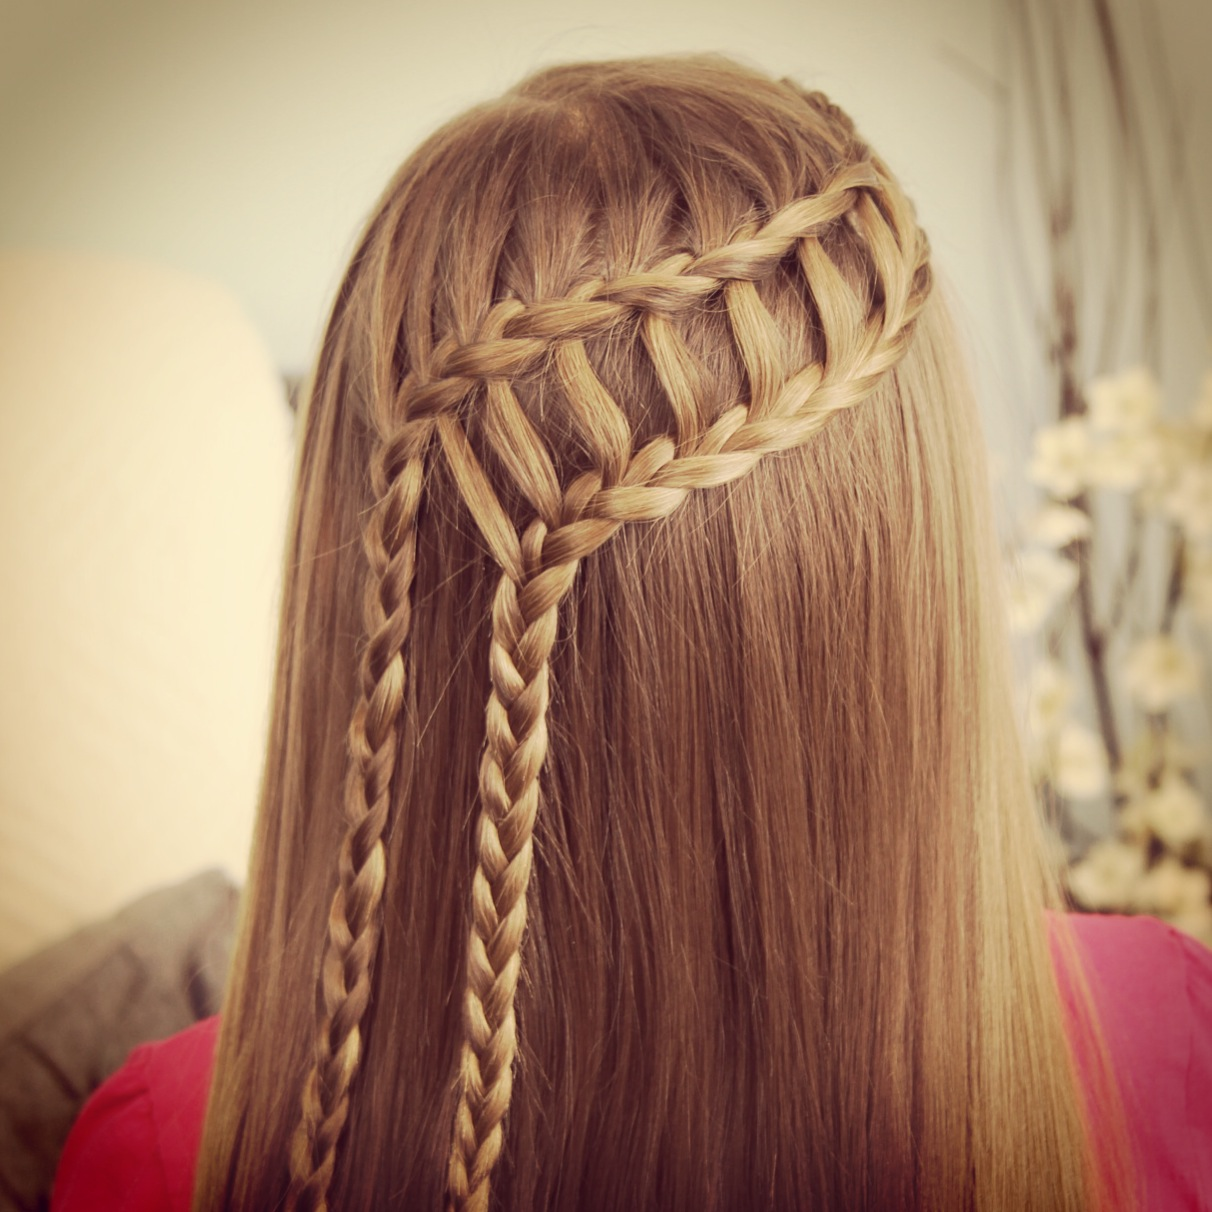 30 Cute Braided Hairstyles Style Arena